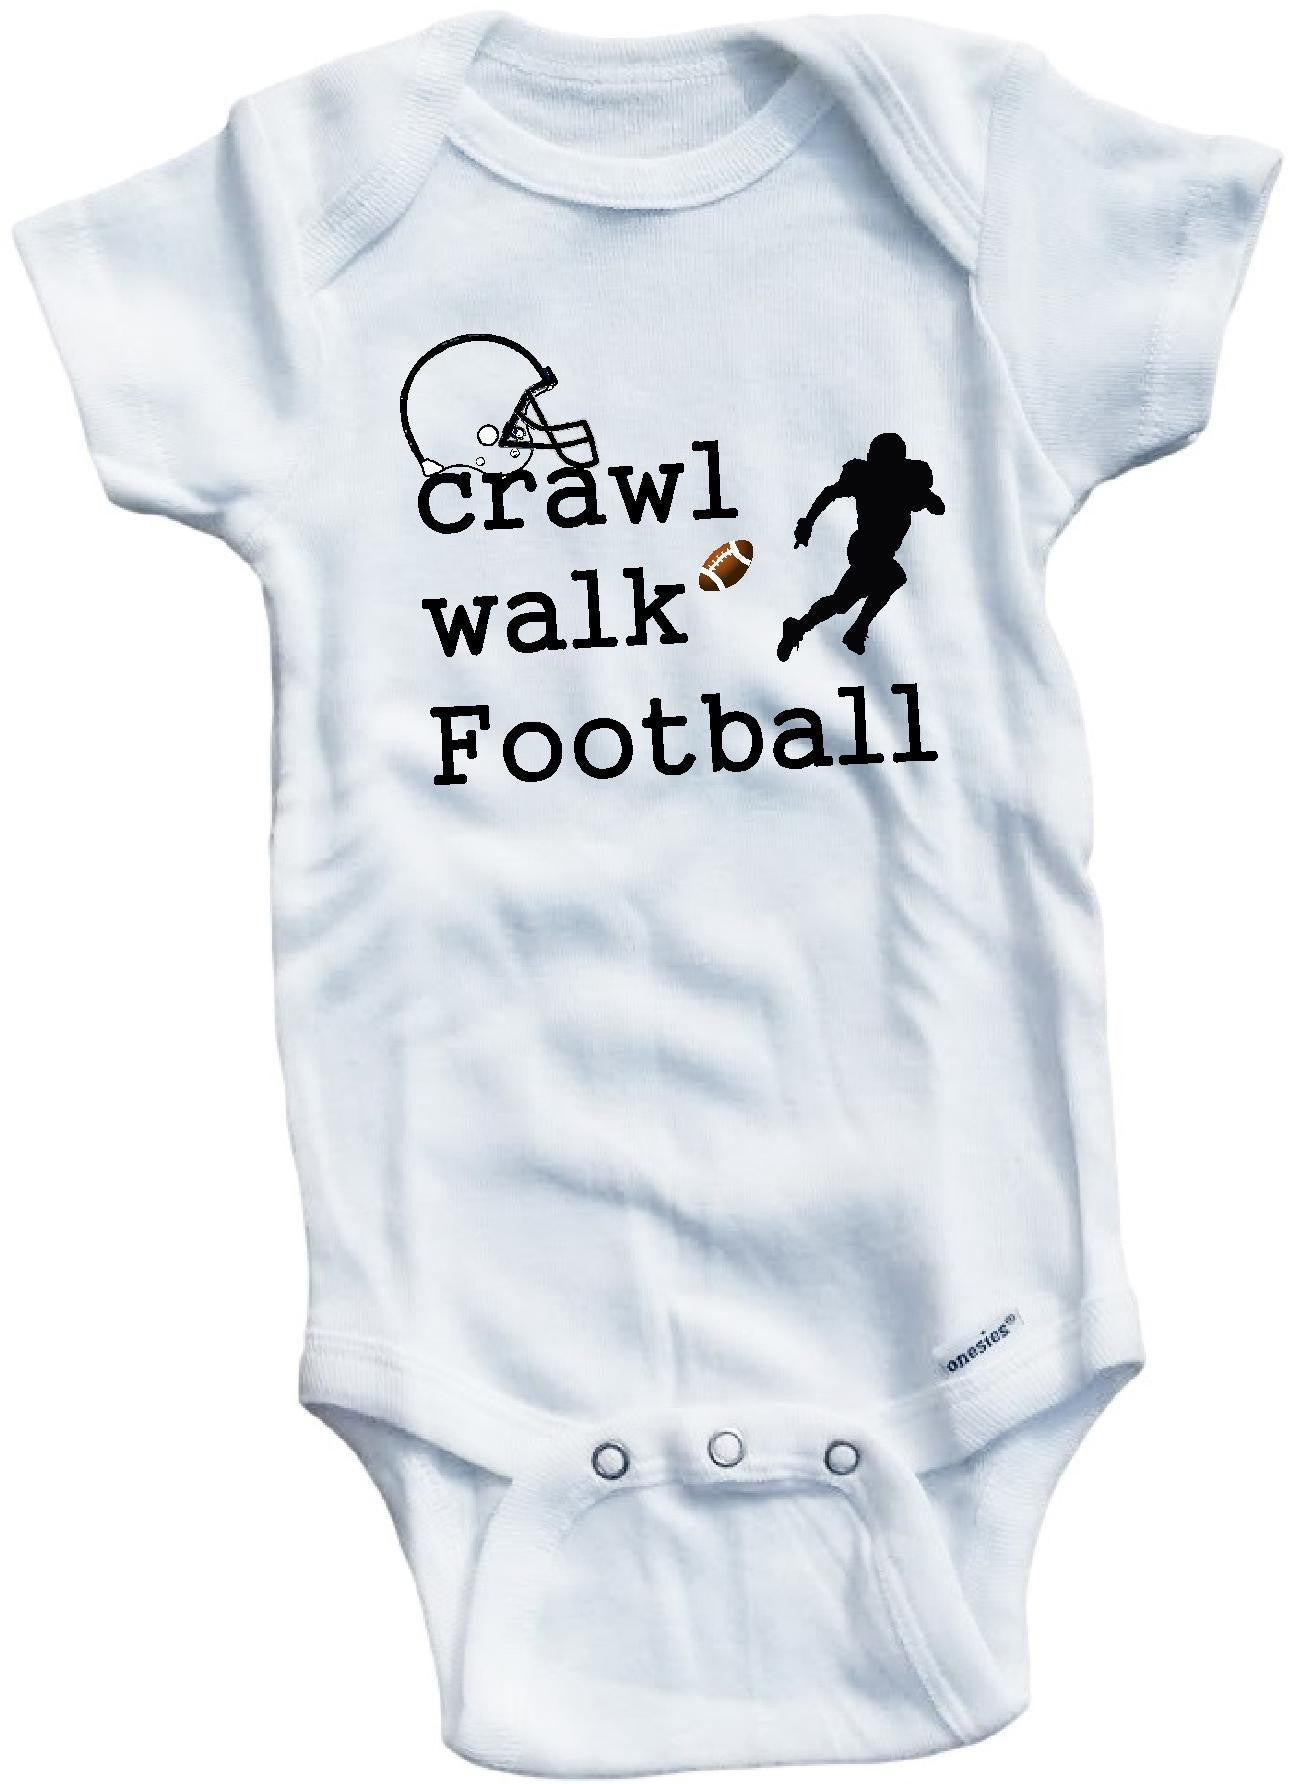 d8590ceea Crawl walk football cute infant clothing funny baby clothes bodysuit ...